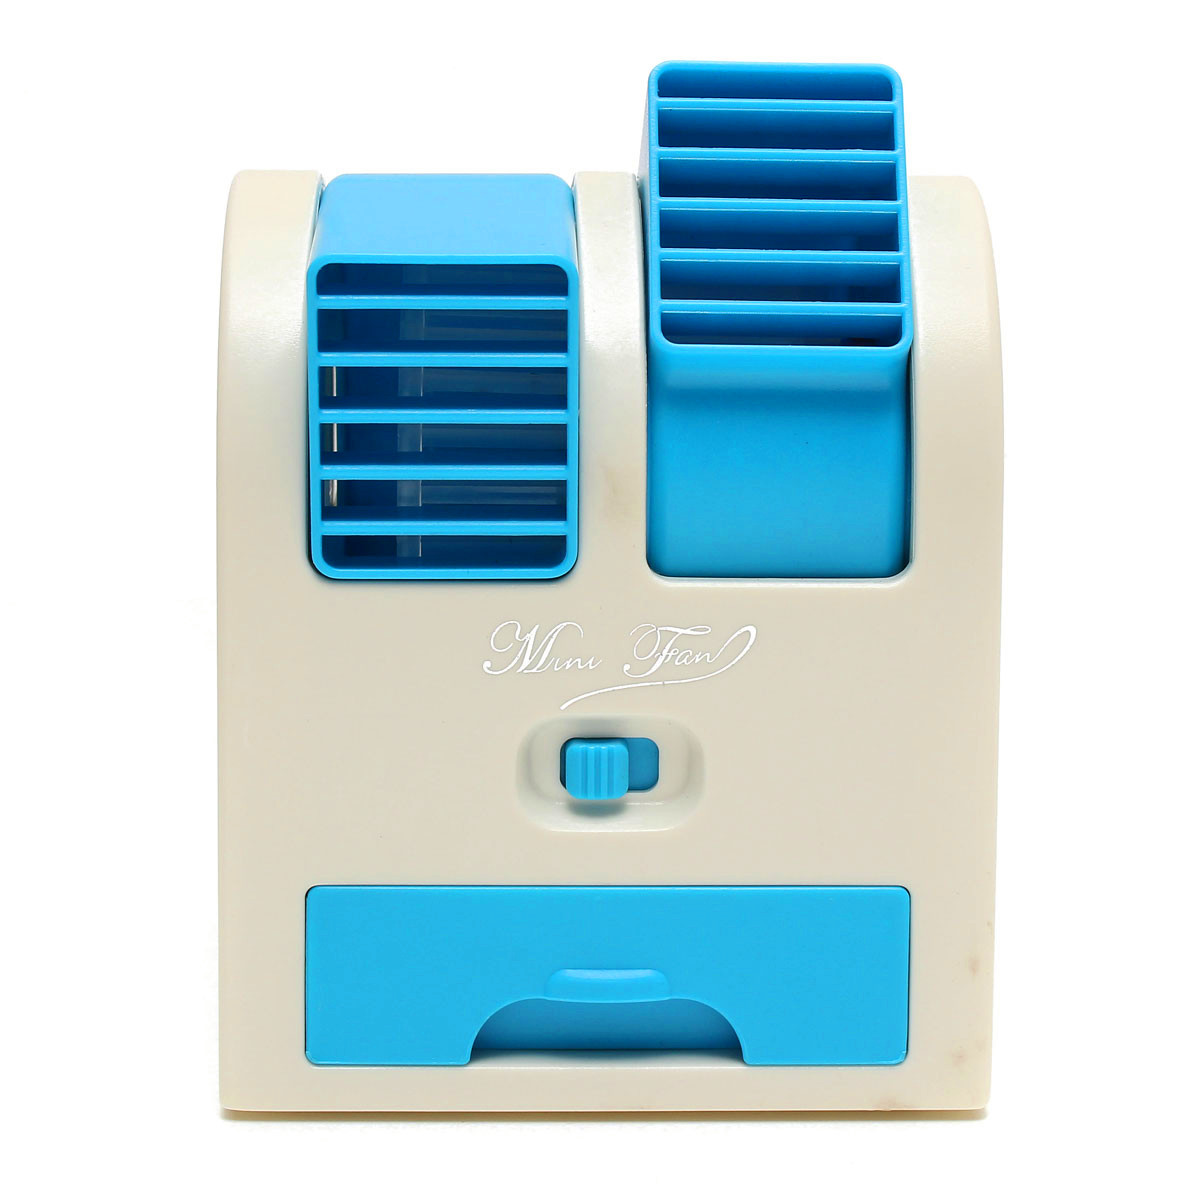 Fan Cooling Portable Desktop Notebook Dual Bladeless Air Conditioner #043A69